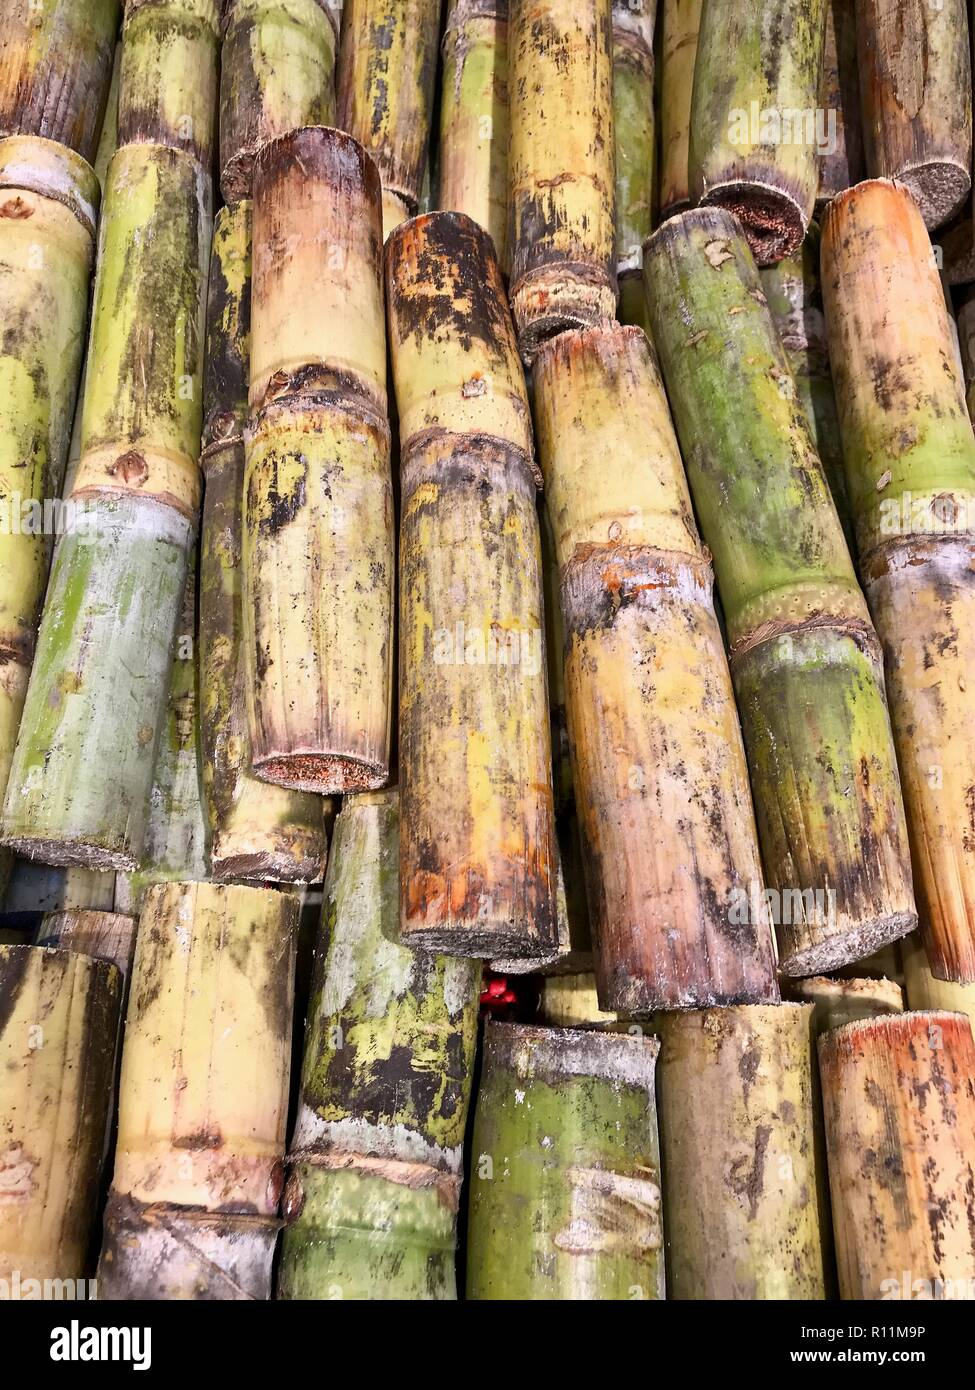 Fresh cut sugar cane in the Caribbean piled up for market - Stock Image